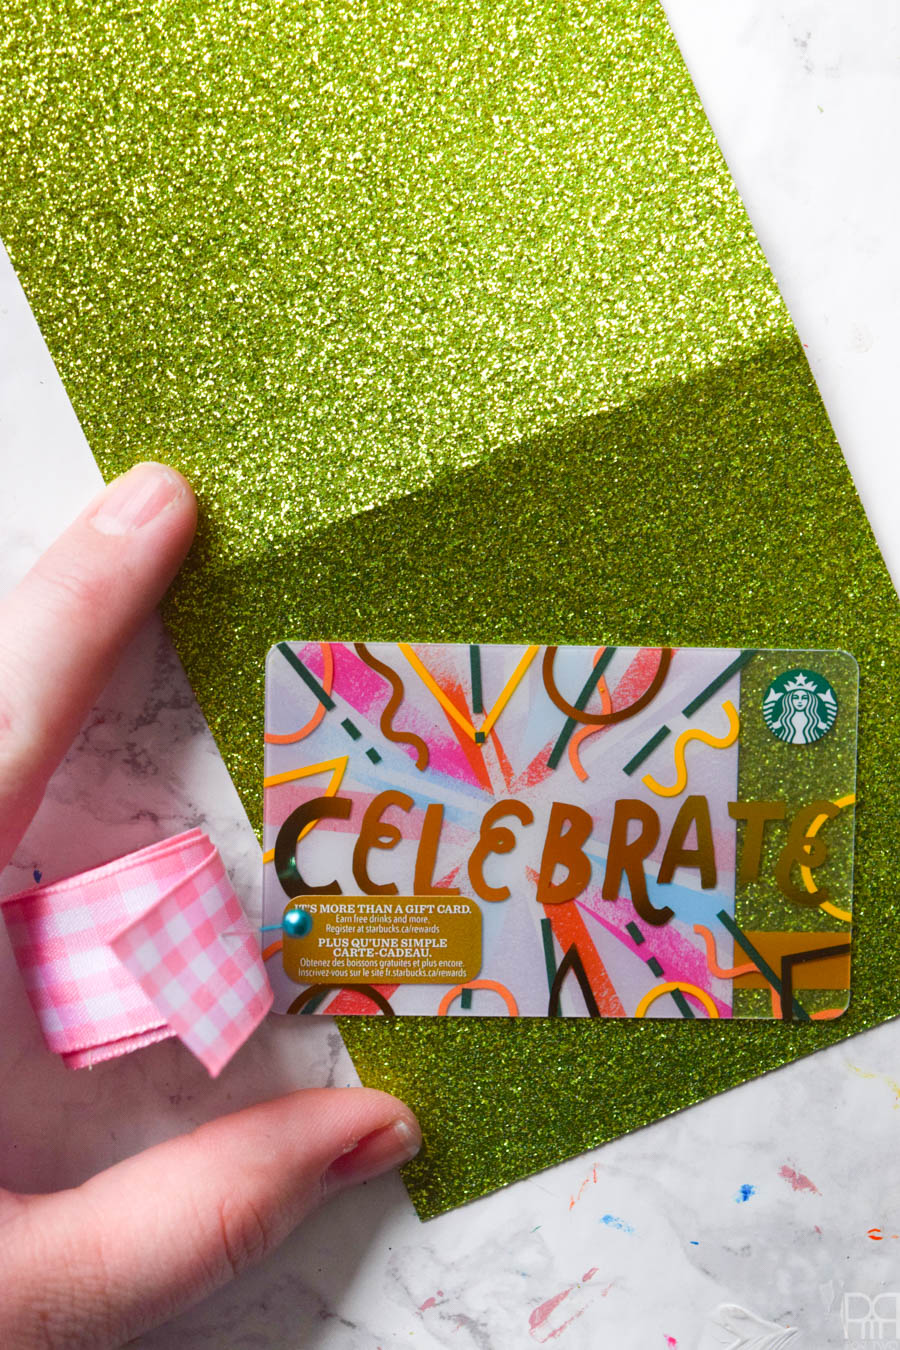 Create your own unique DIY Gift Card Holders using craft supplies and ribbon. They're colourful, fun, and best of all - no one will know if you left their gift until the last minute! #giftcardholder #glittercardstock #giftcardholderdiy